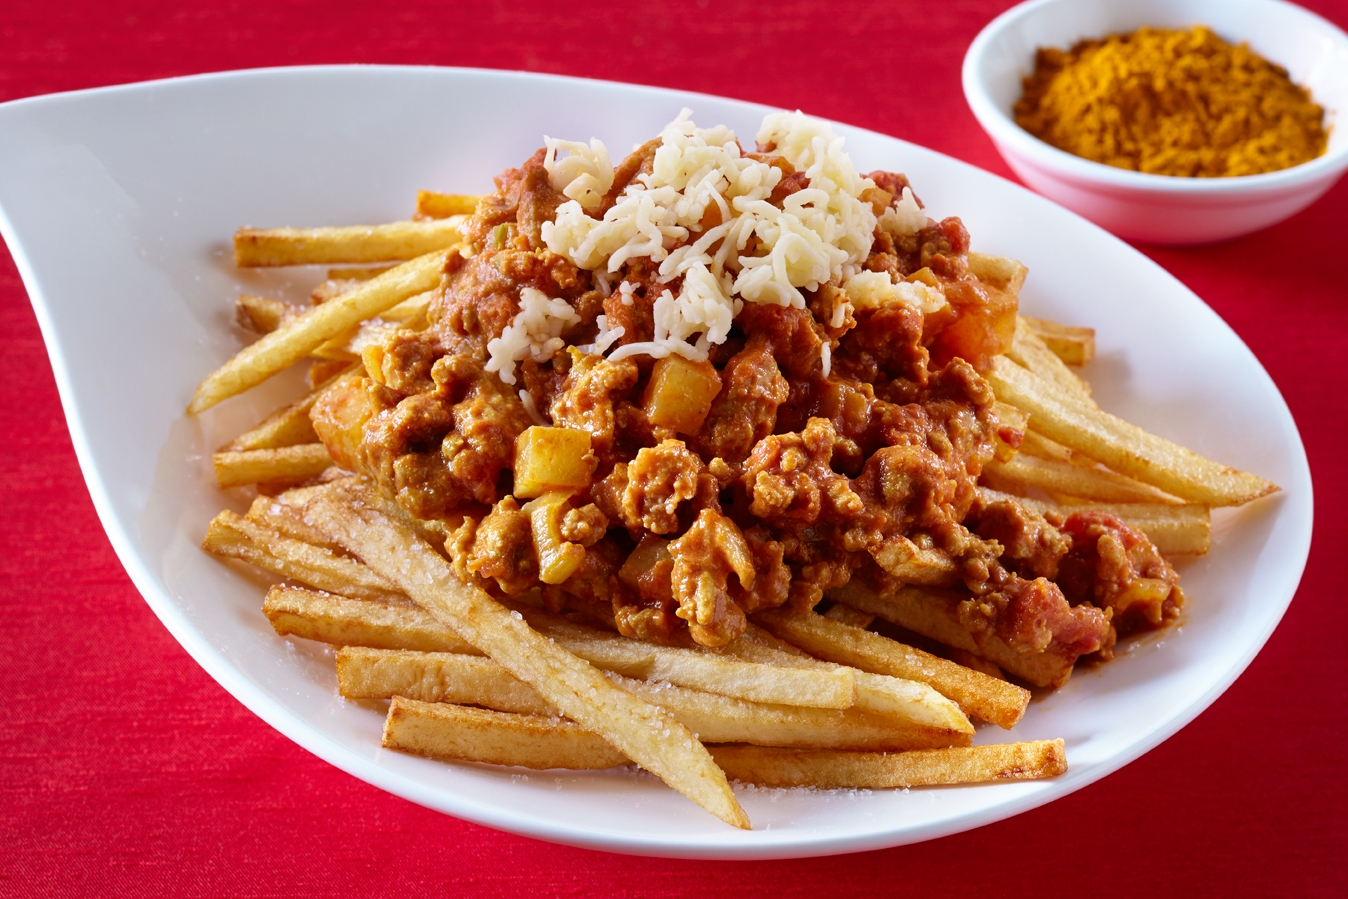 Bombay Chili Cheese Fries